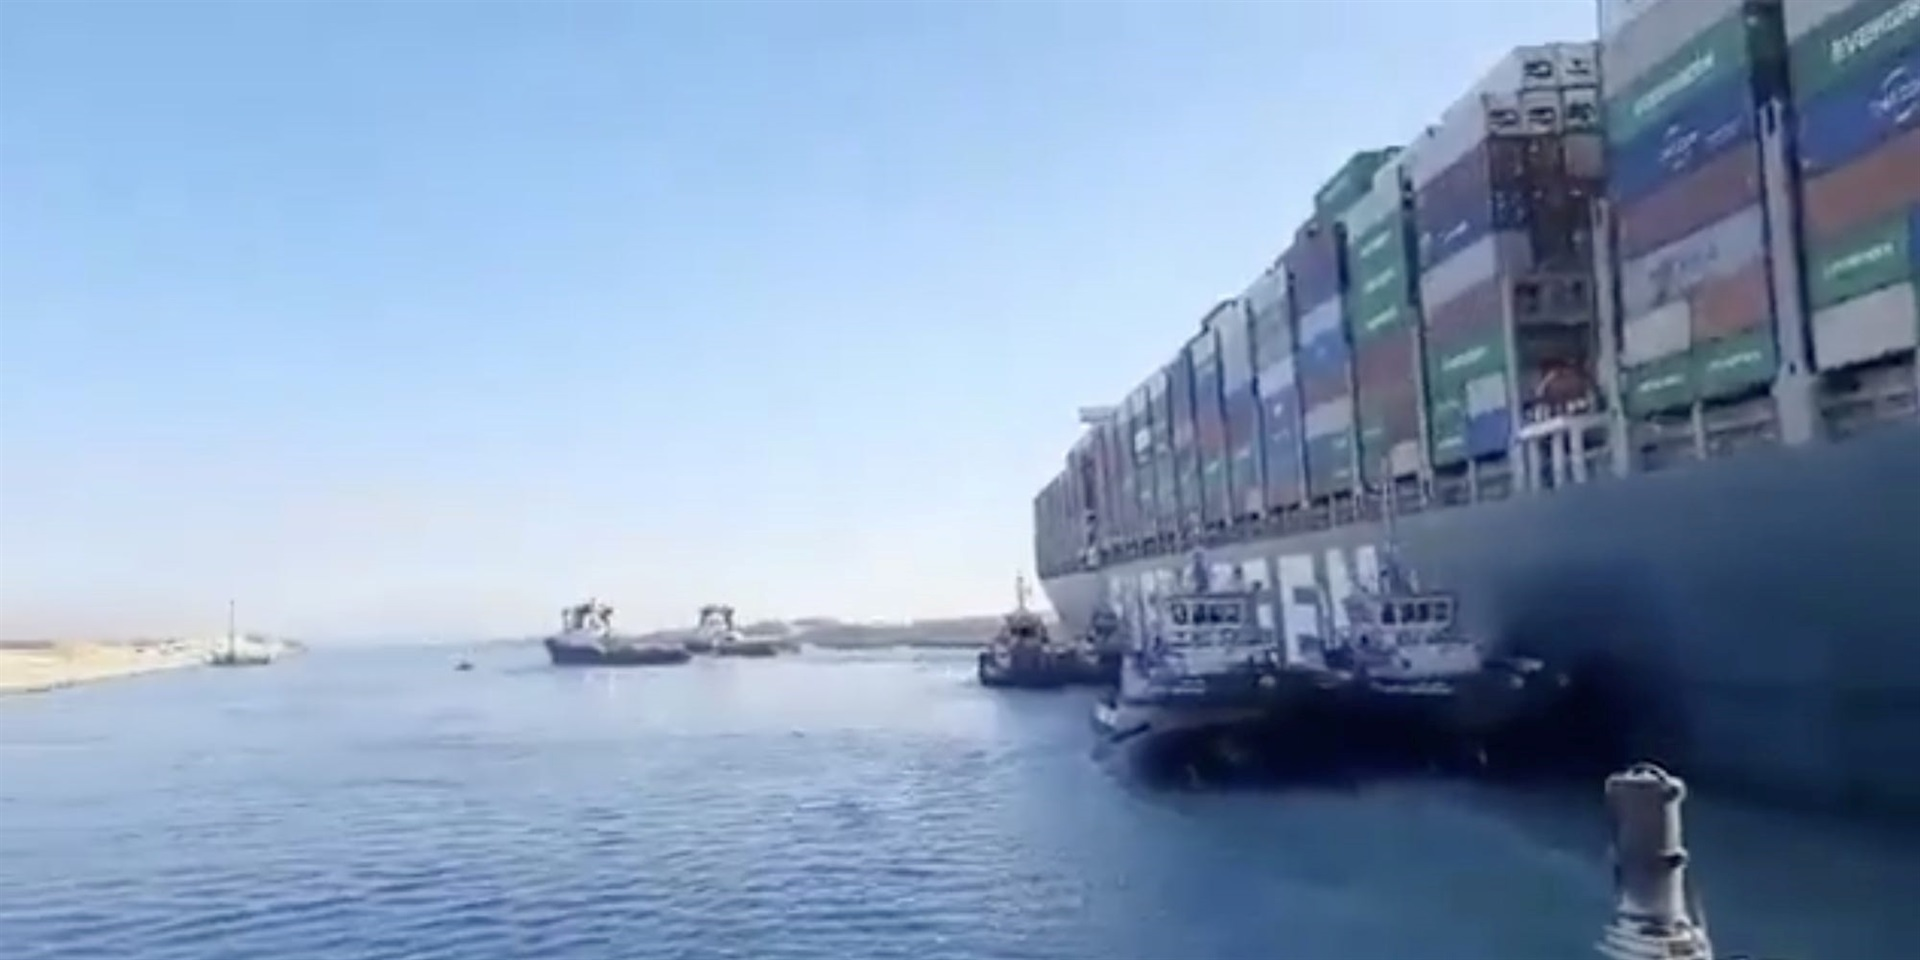 A March 29 video still of the Suez Canal, which the Ever Given (right) had blocked.